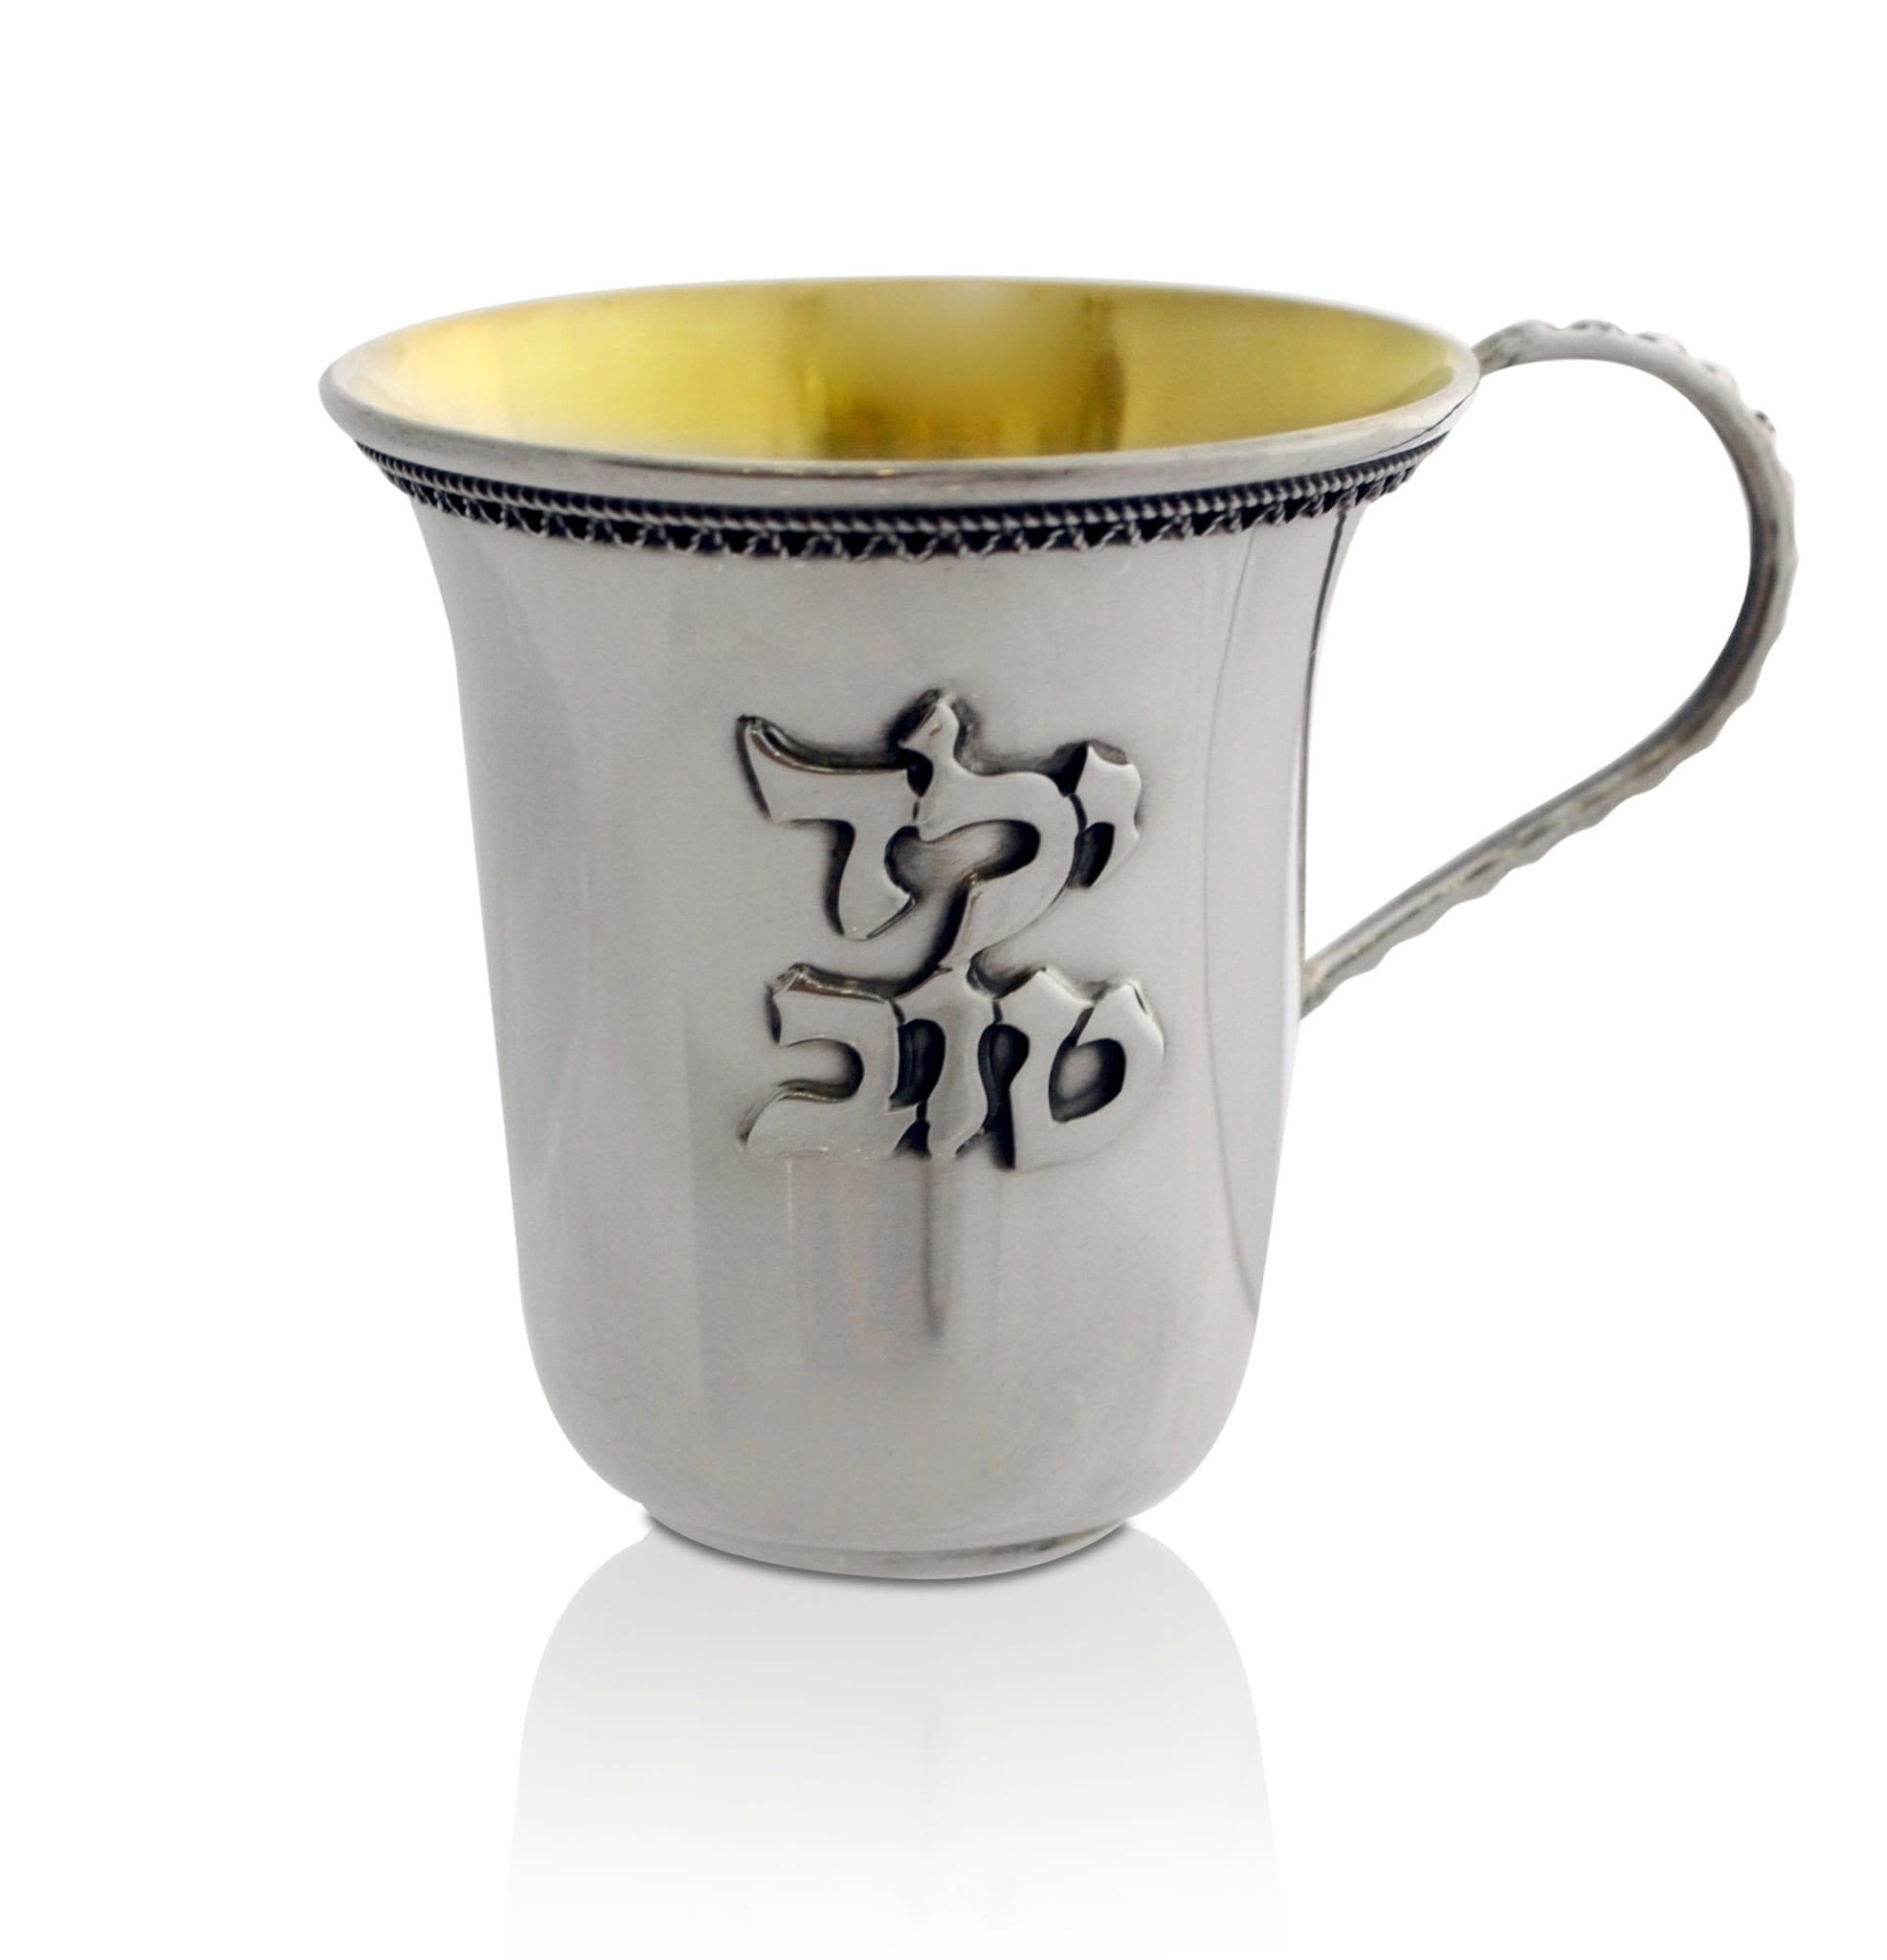 classic sterling silver yeled tov boy cup, judaica made in israel